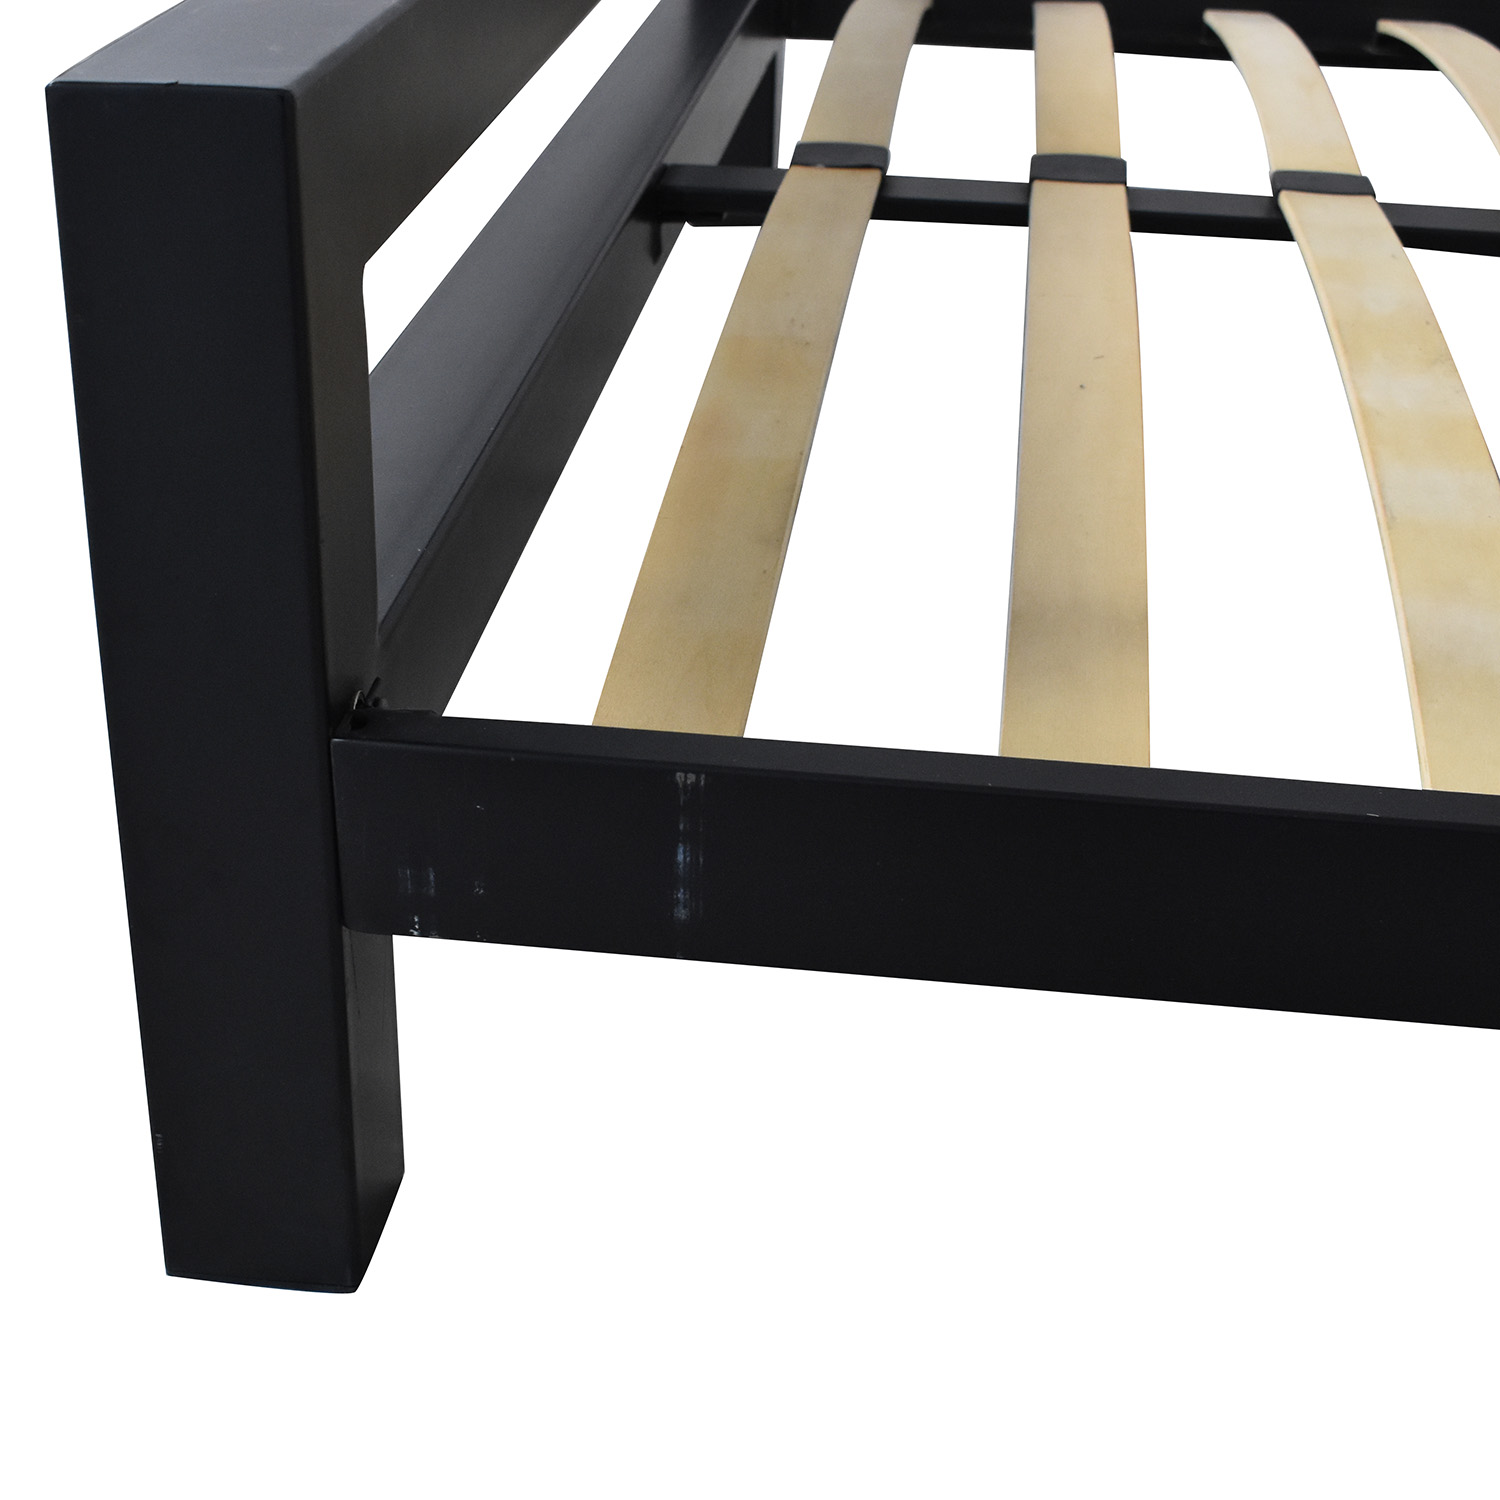 CB2 CB2 Modern Queen Bed Frame used